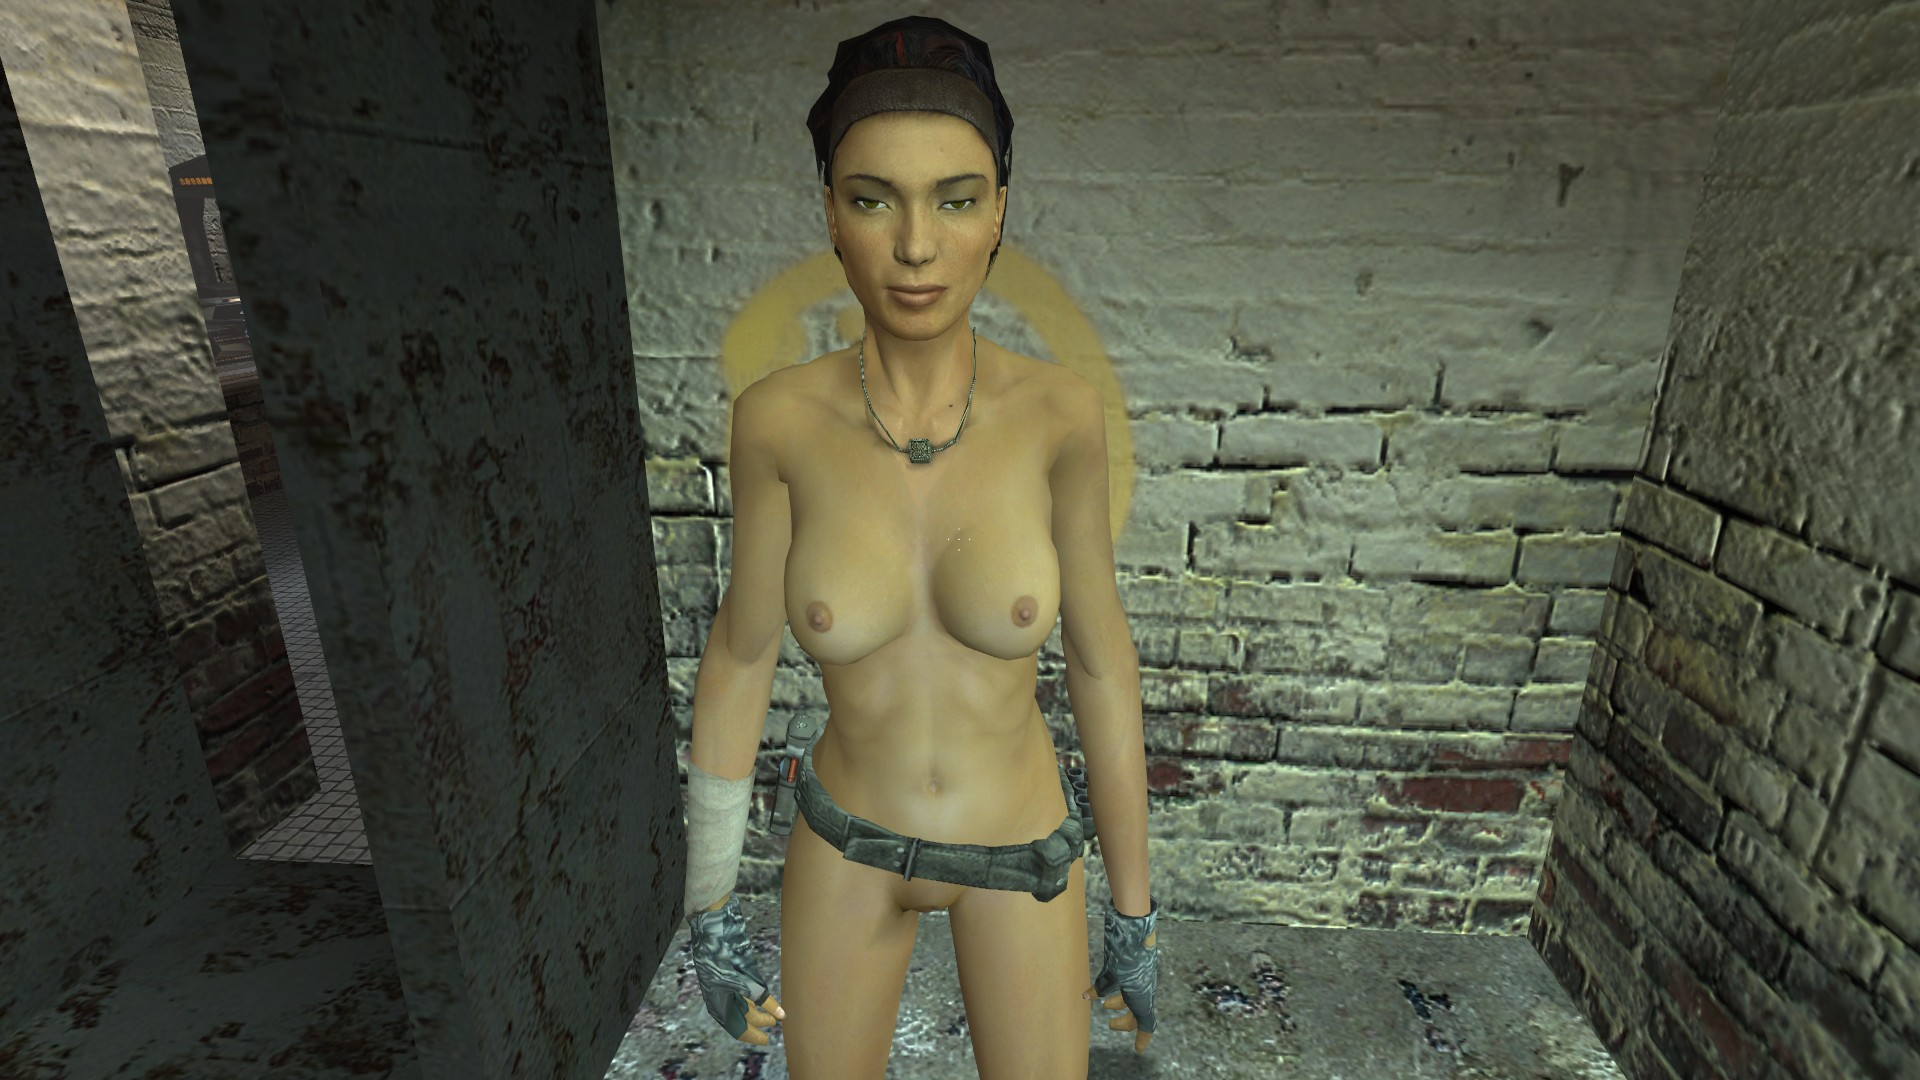 Nude patch half life episode hardcore scene